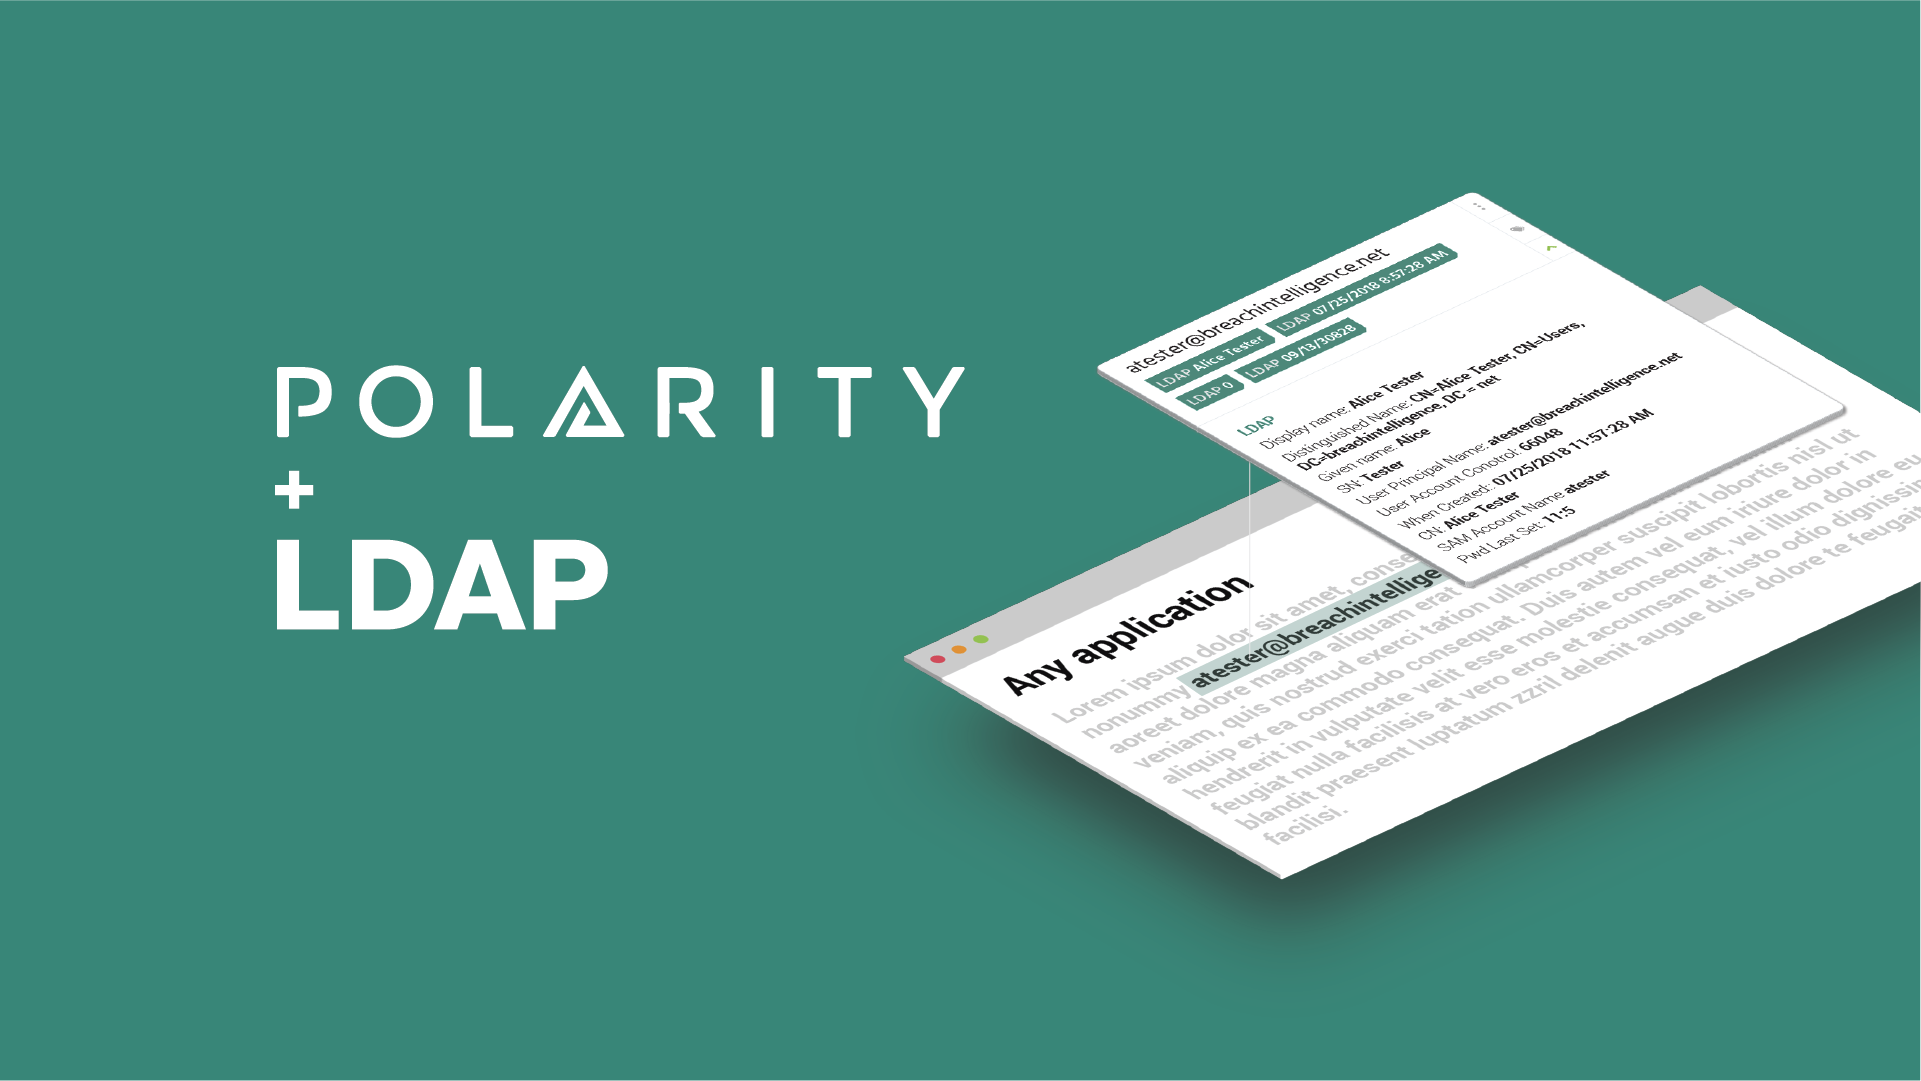 Leveraging LDAP with Polarity cover image